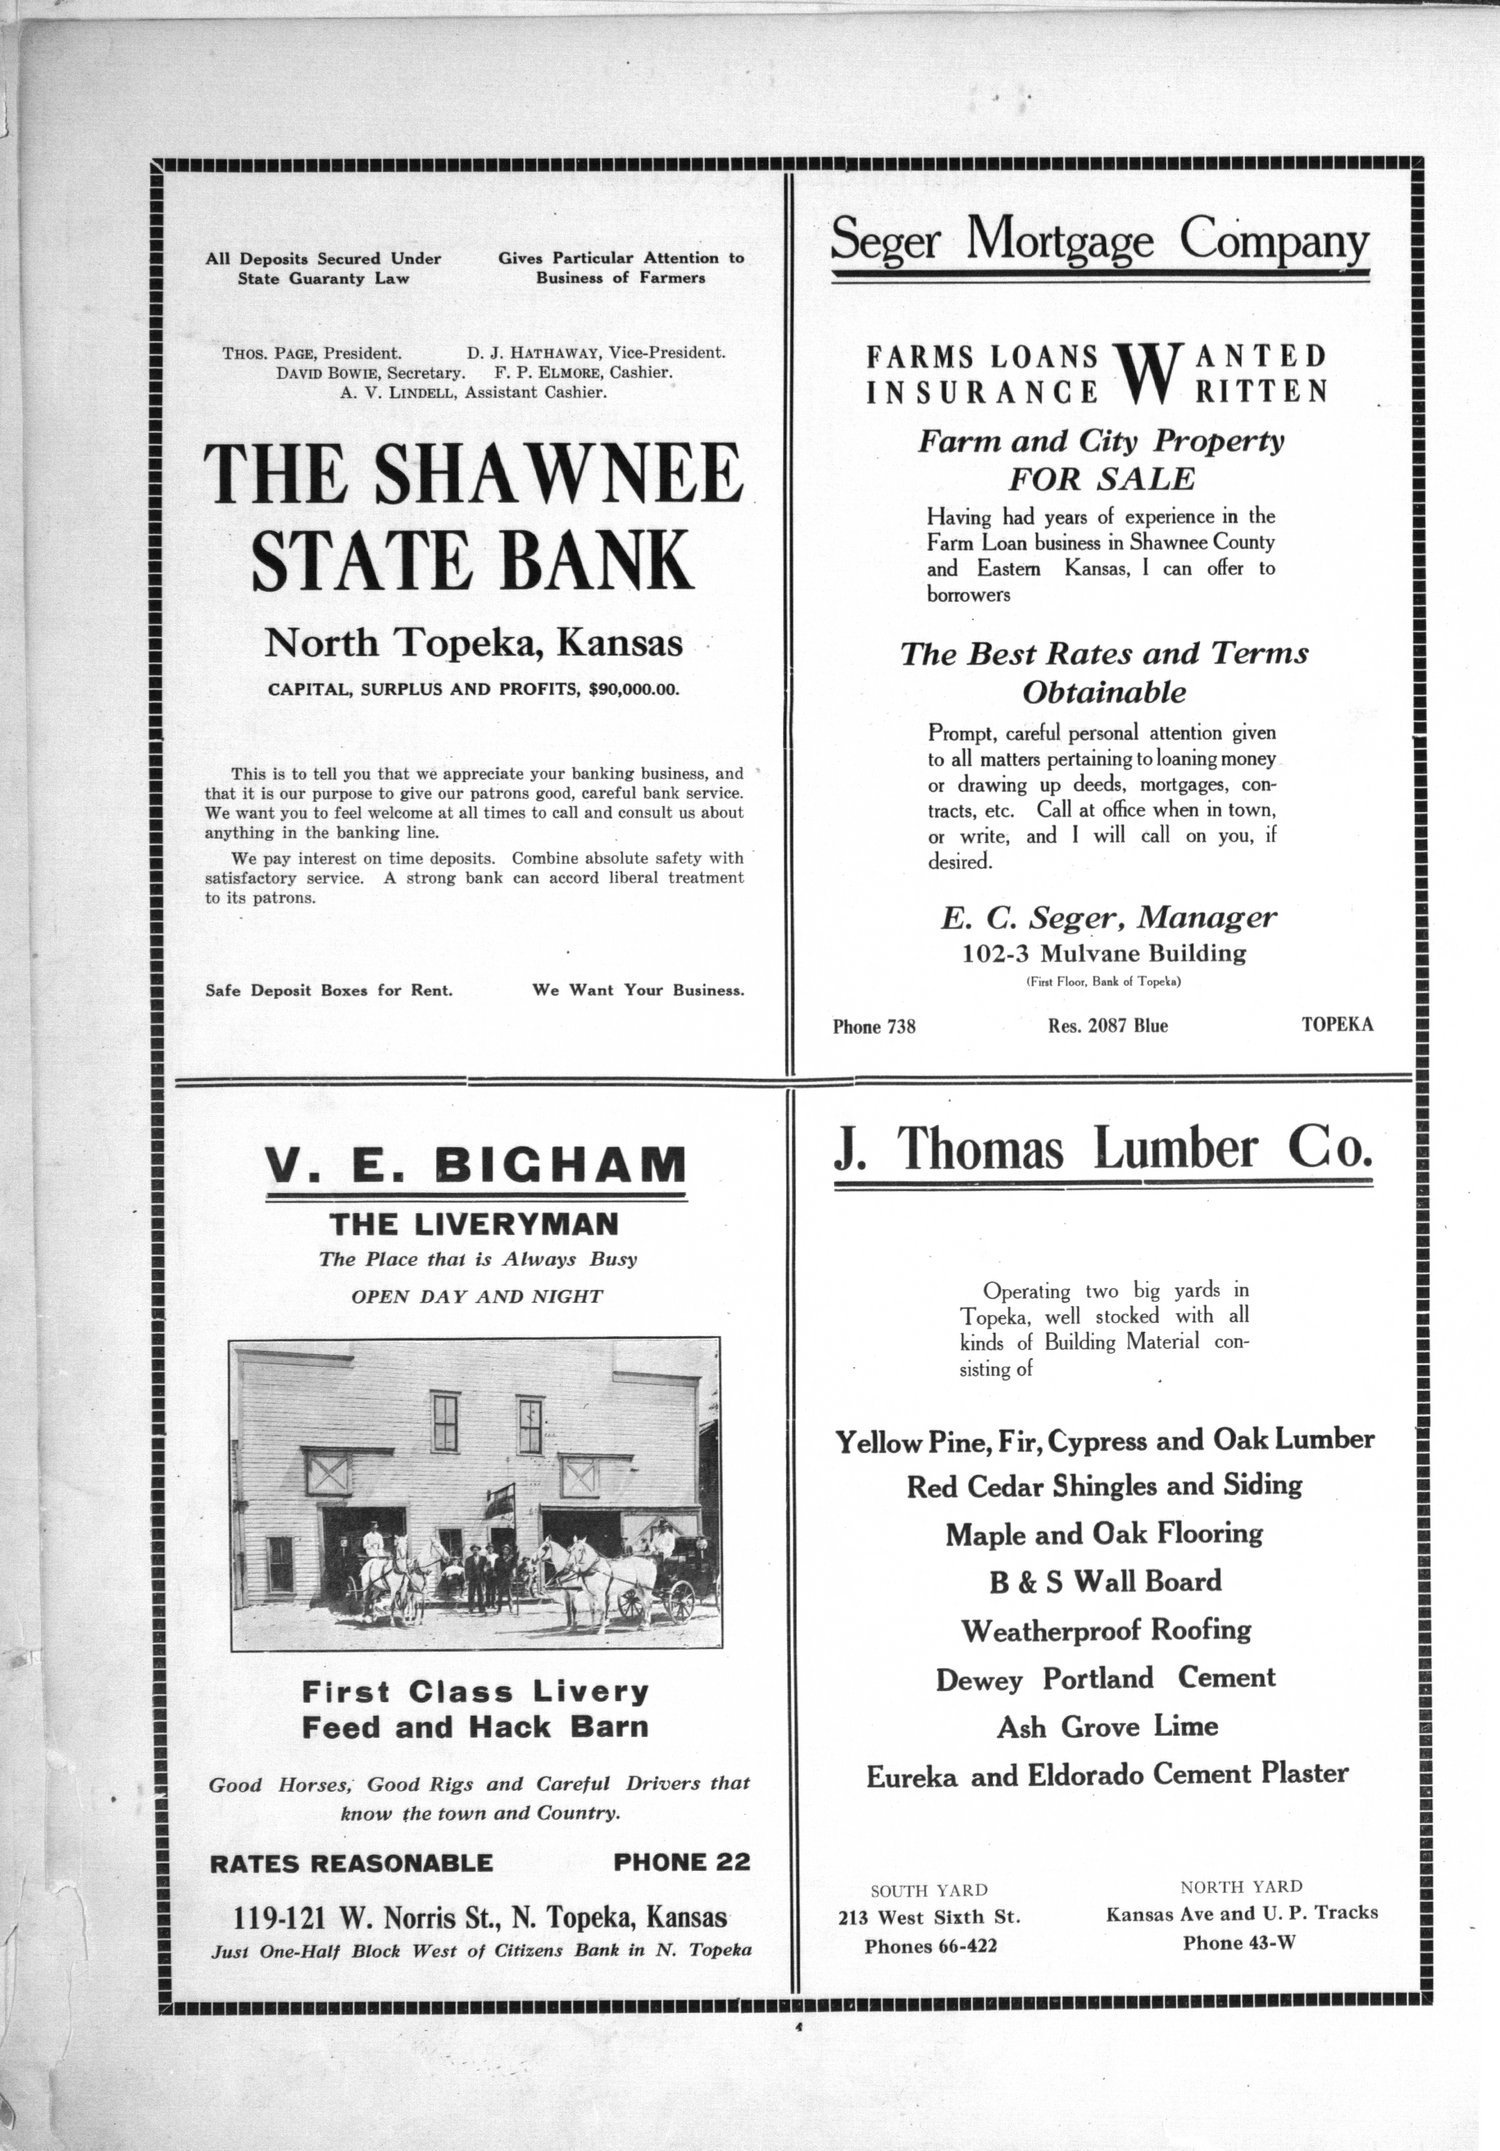 Plat book, directory and survey of Shawnee County, Kansas - 4